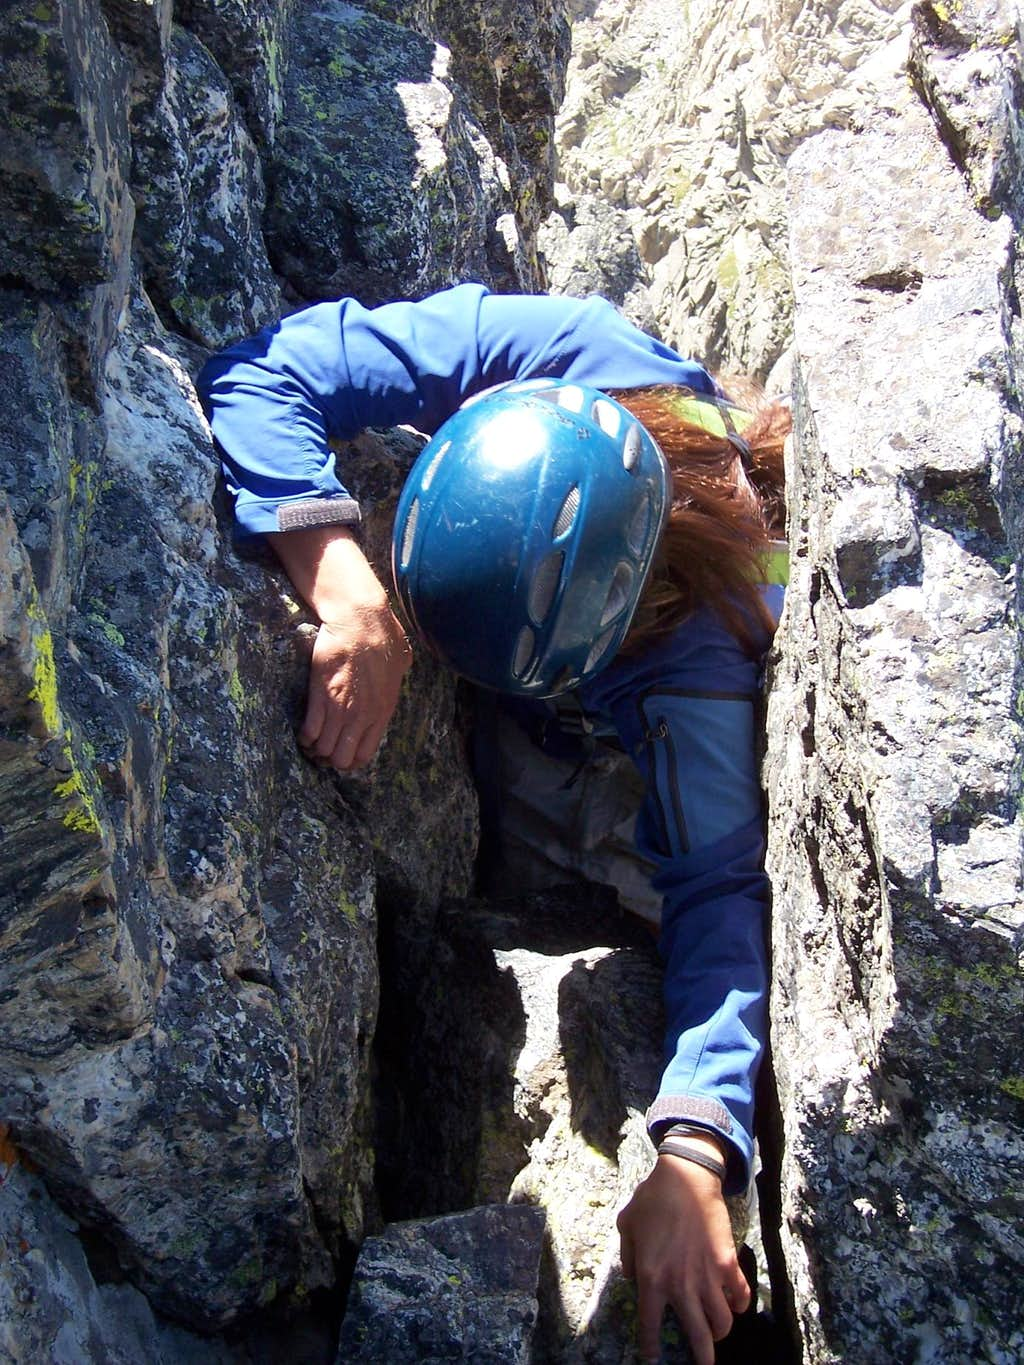 Out of the crux